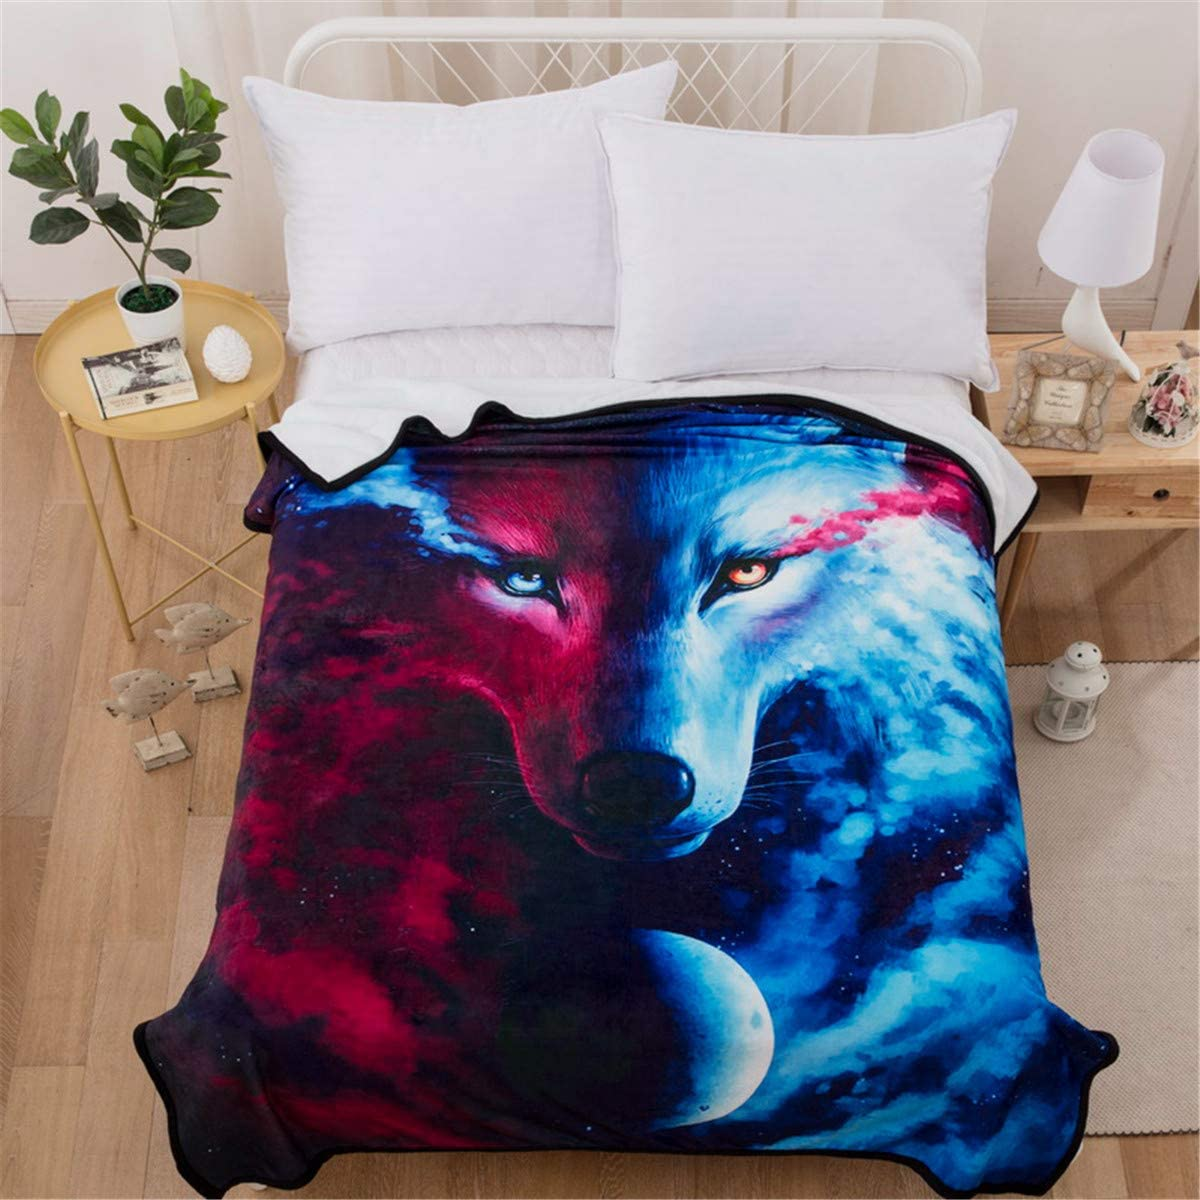 "WONGS BEDDING Soft Wolf Blanket 3D Animal Star Wolf Pattern Printed White Fleece Blanket for Kids Boys Adults Lightweight Warm Reversible Throw Blanket for Couch and Bed Twin Size 60""x80"""